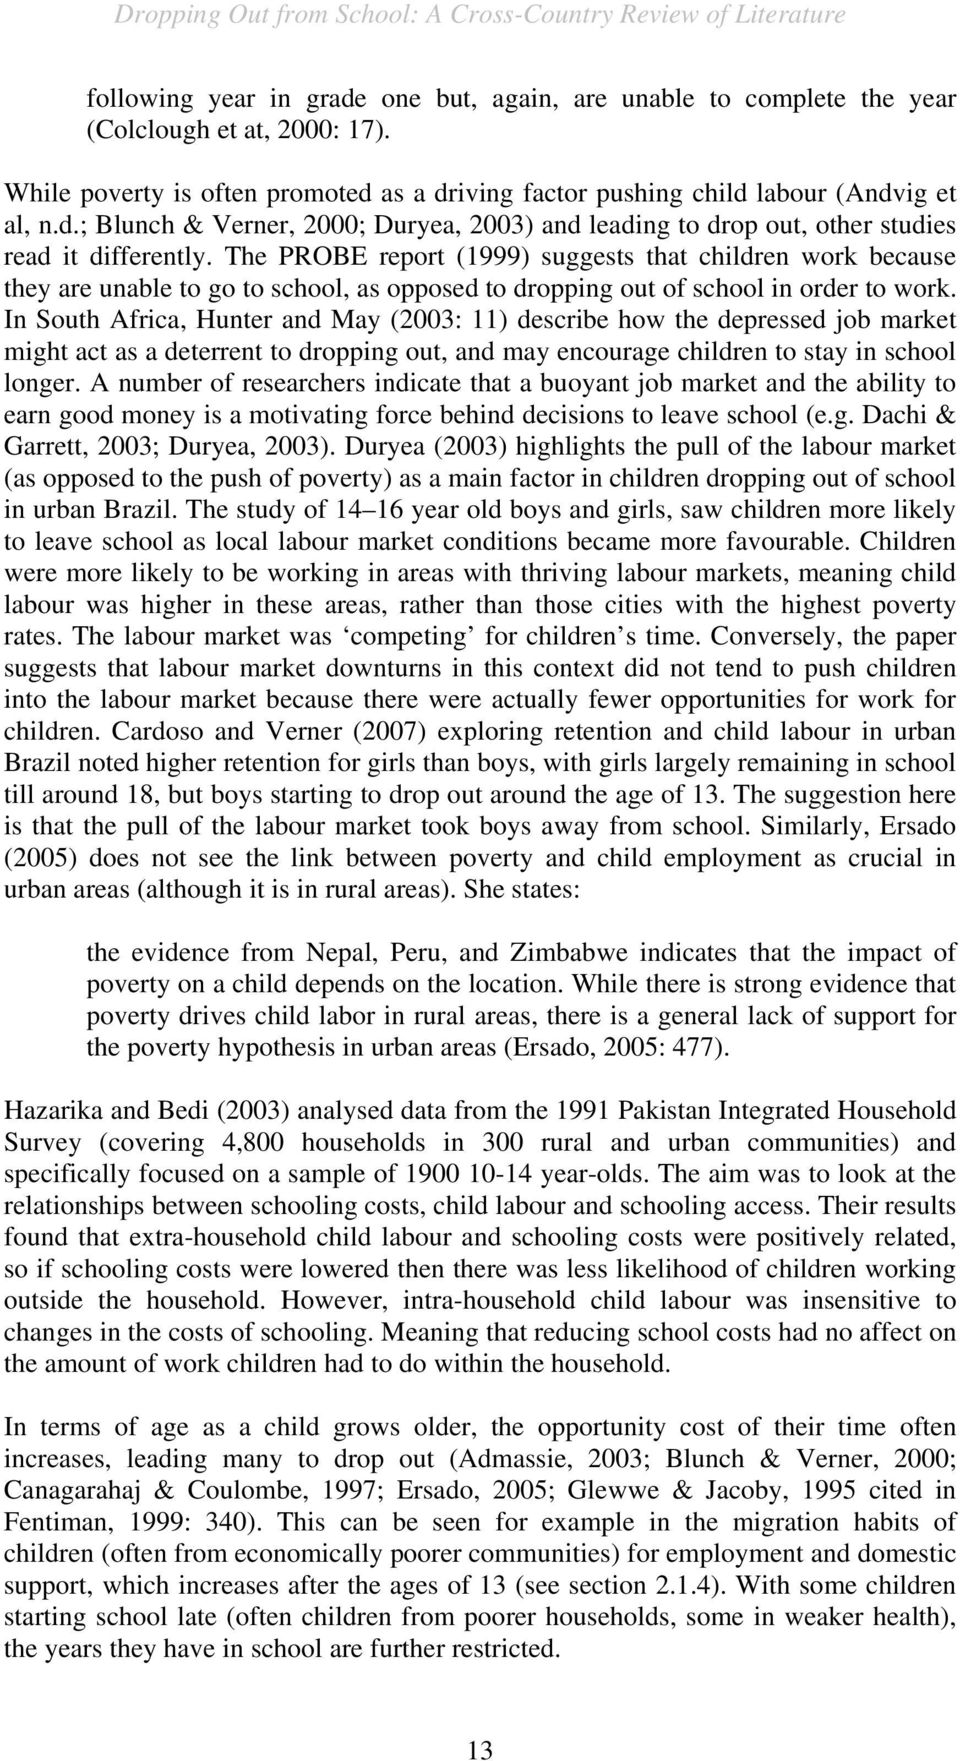 In South Africa, Hunter and May (2003: 11) describe how the depressed job market might act as a deterrent to dropping out, and may encourage children to stay in school longer.